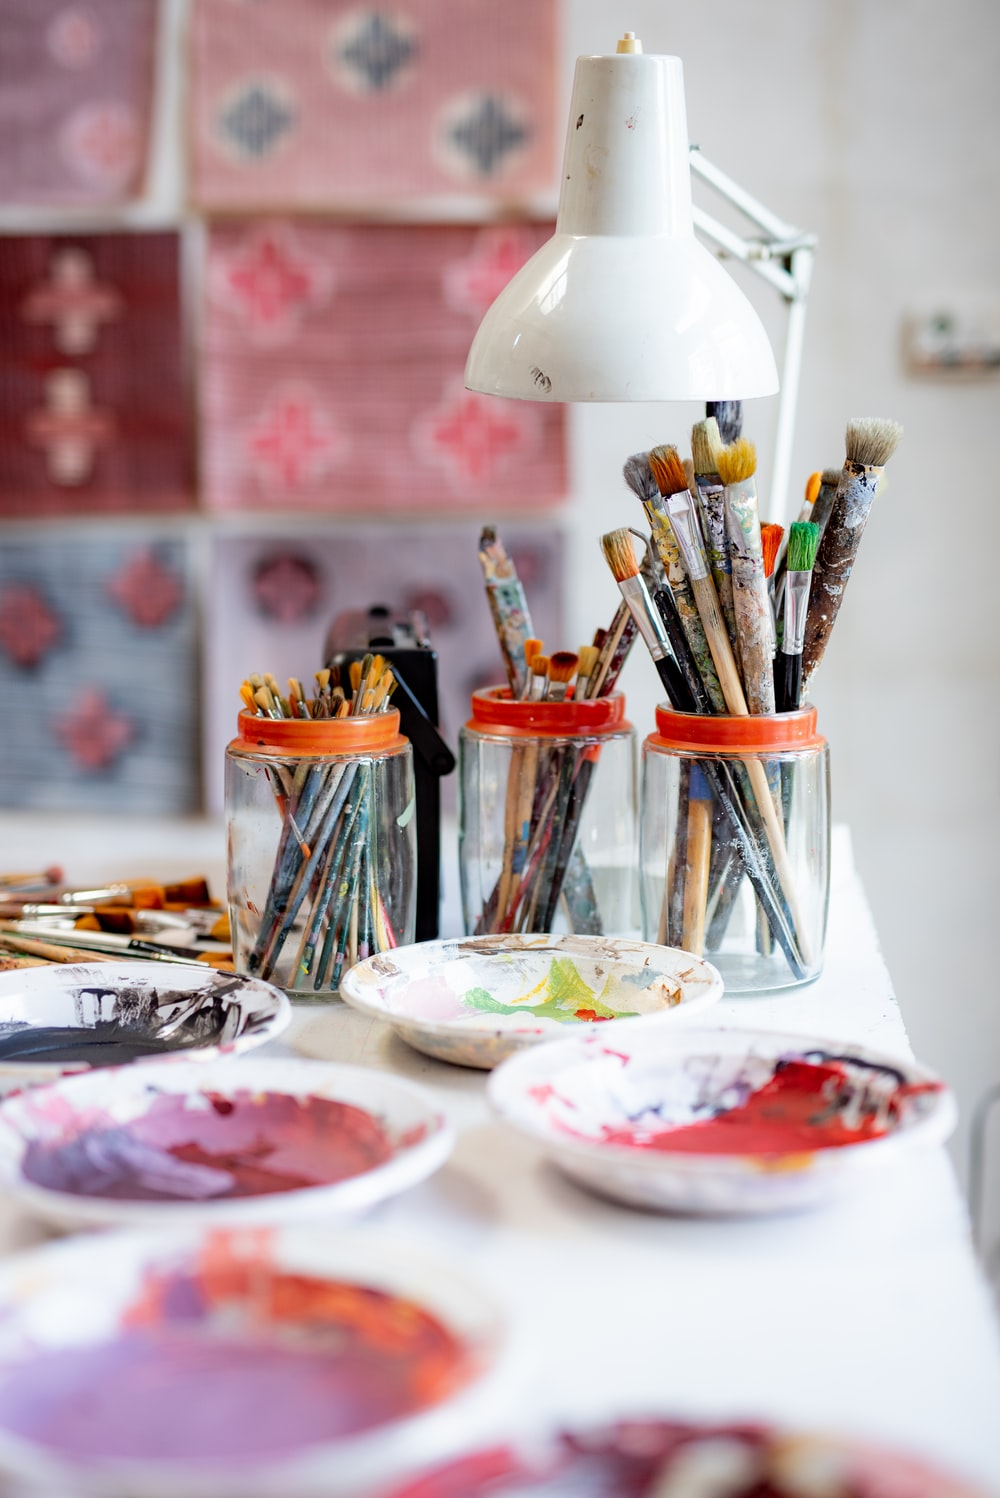 white ceramic plate with paint brushes and paint brushes